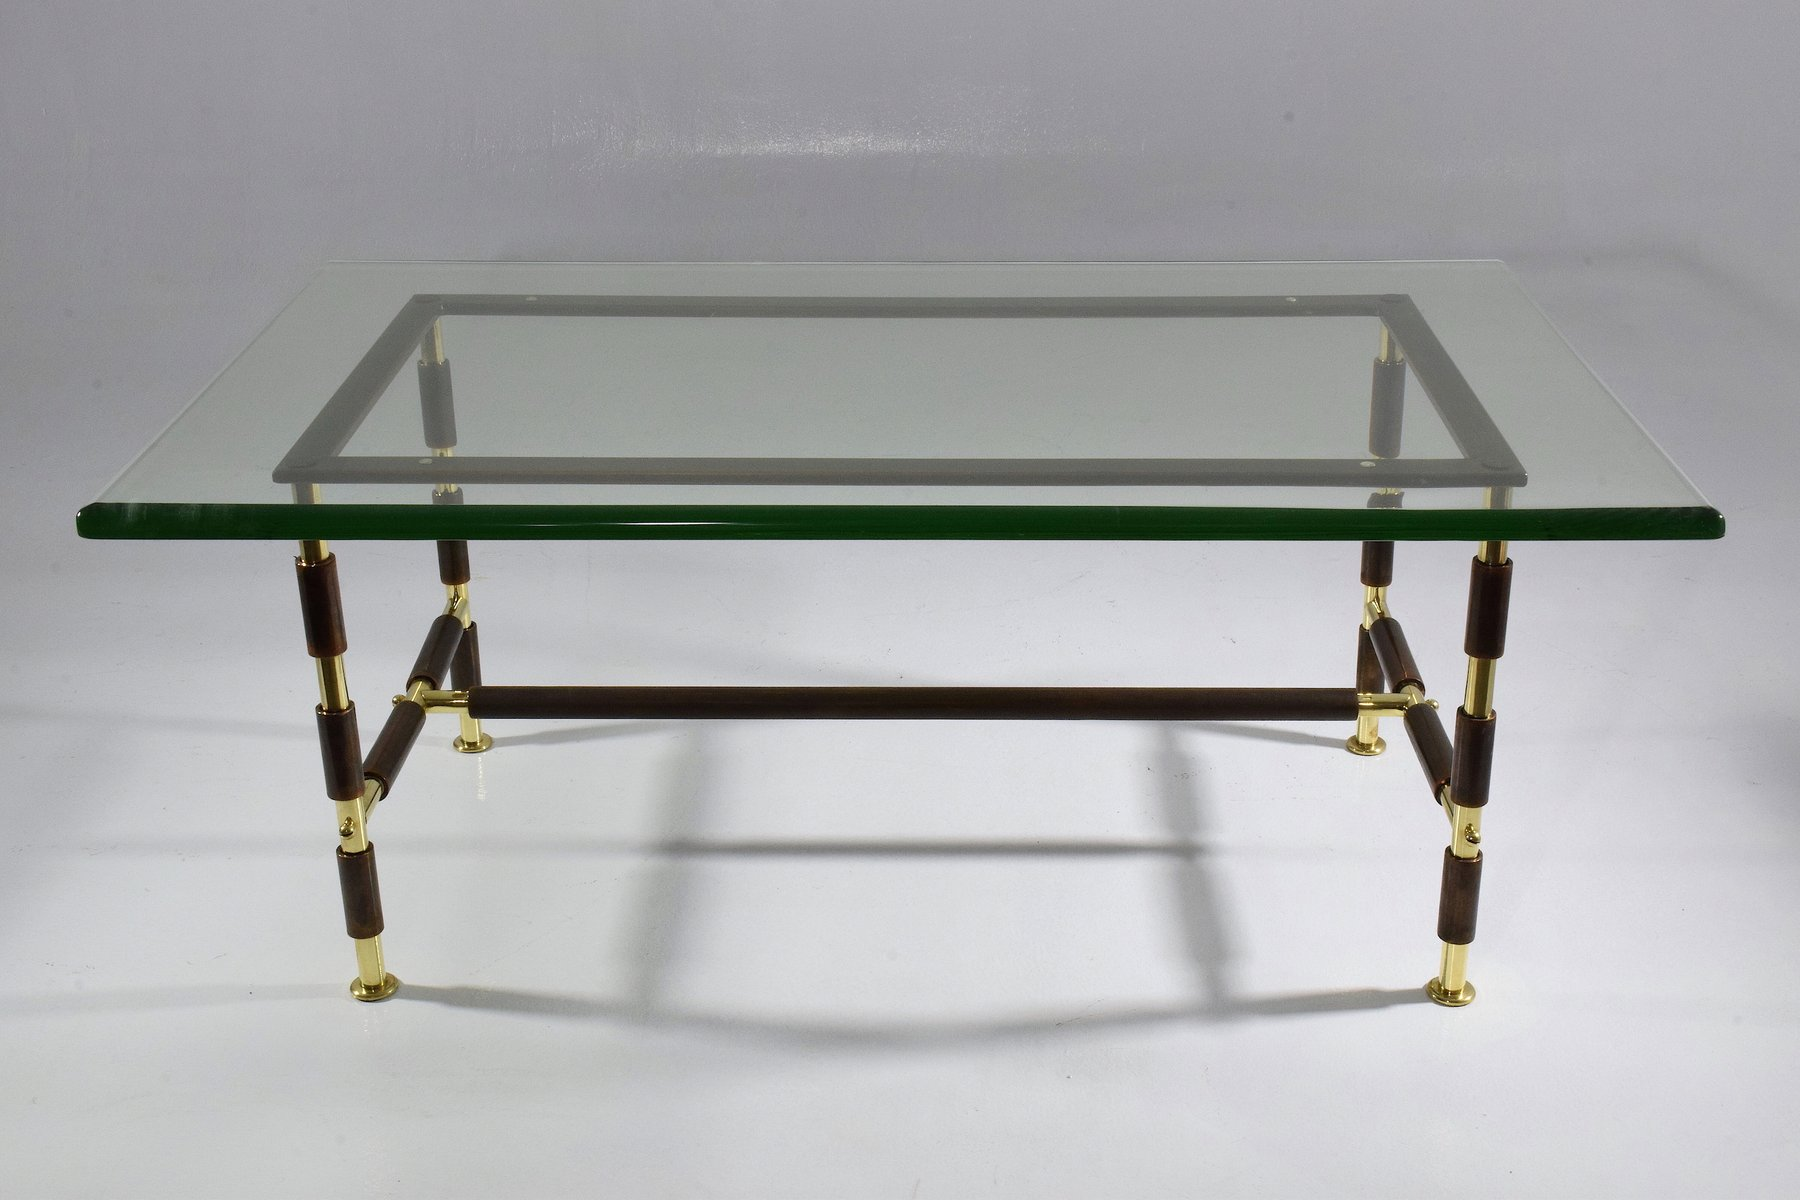 Fontana Arte 1736 Coffee Table By Max Ingrand For Fontana Arte 1955